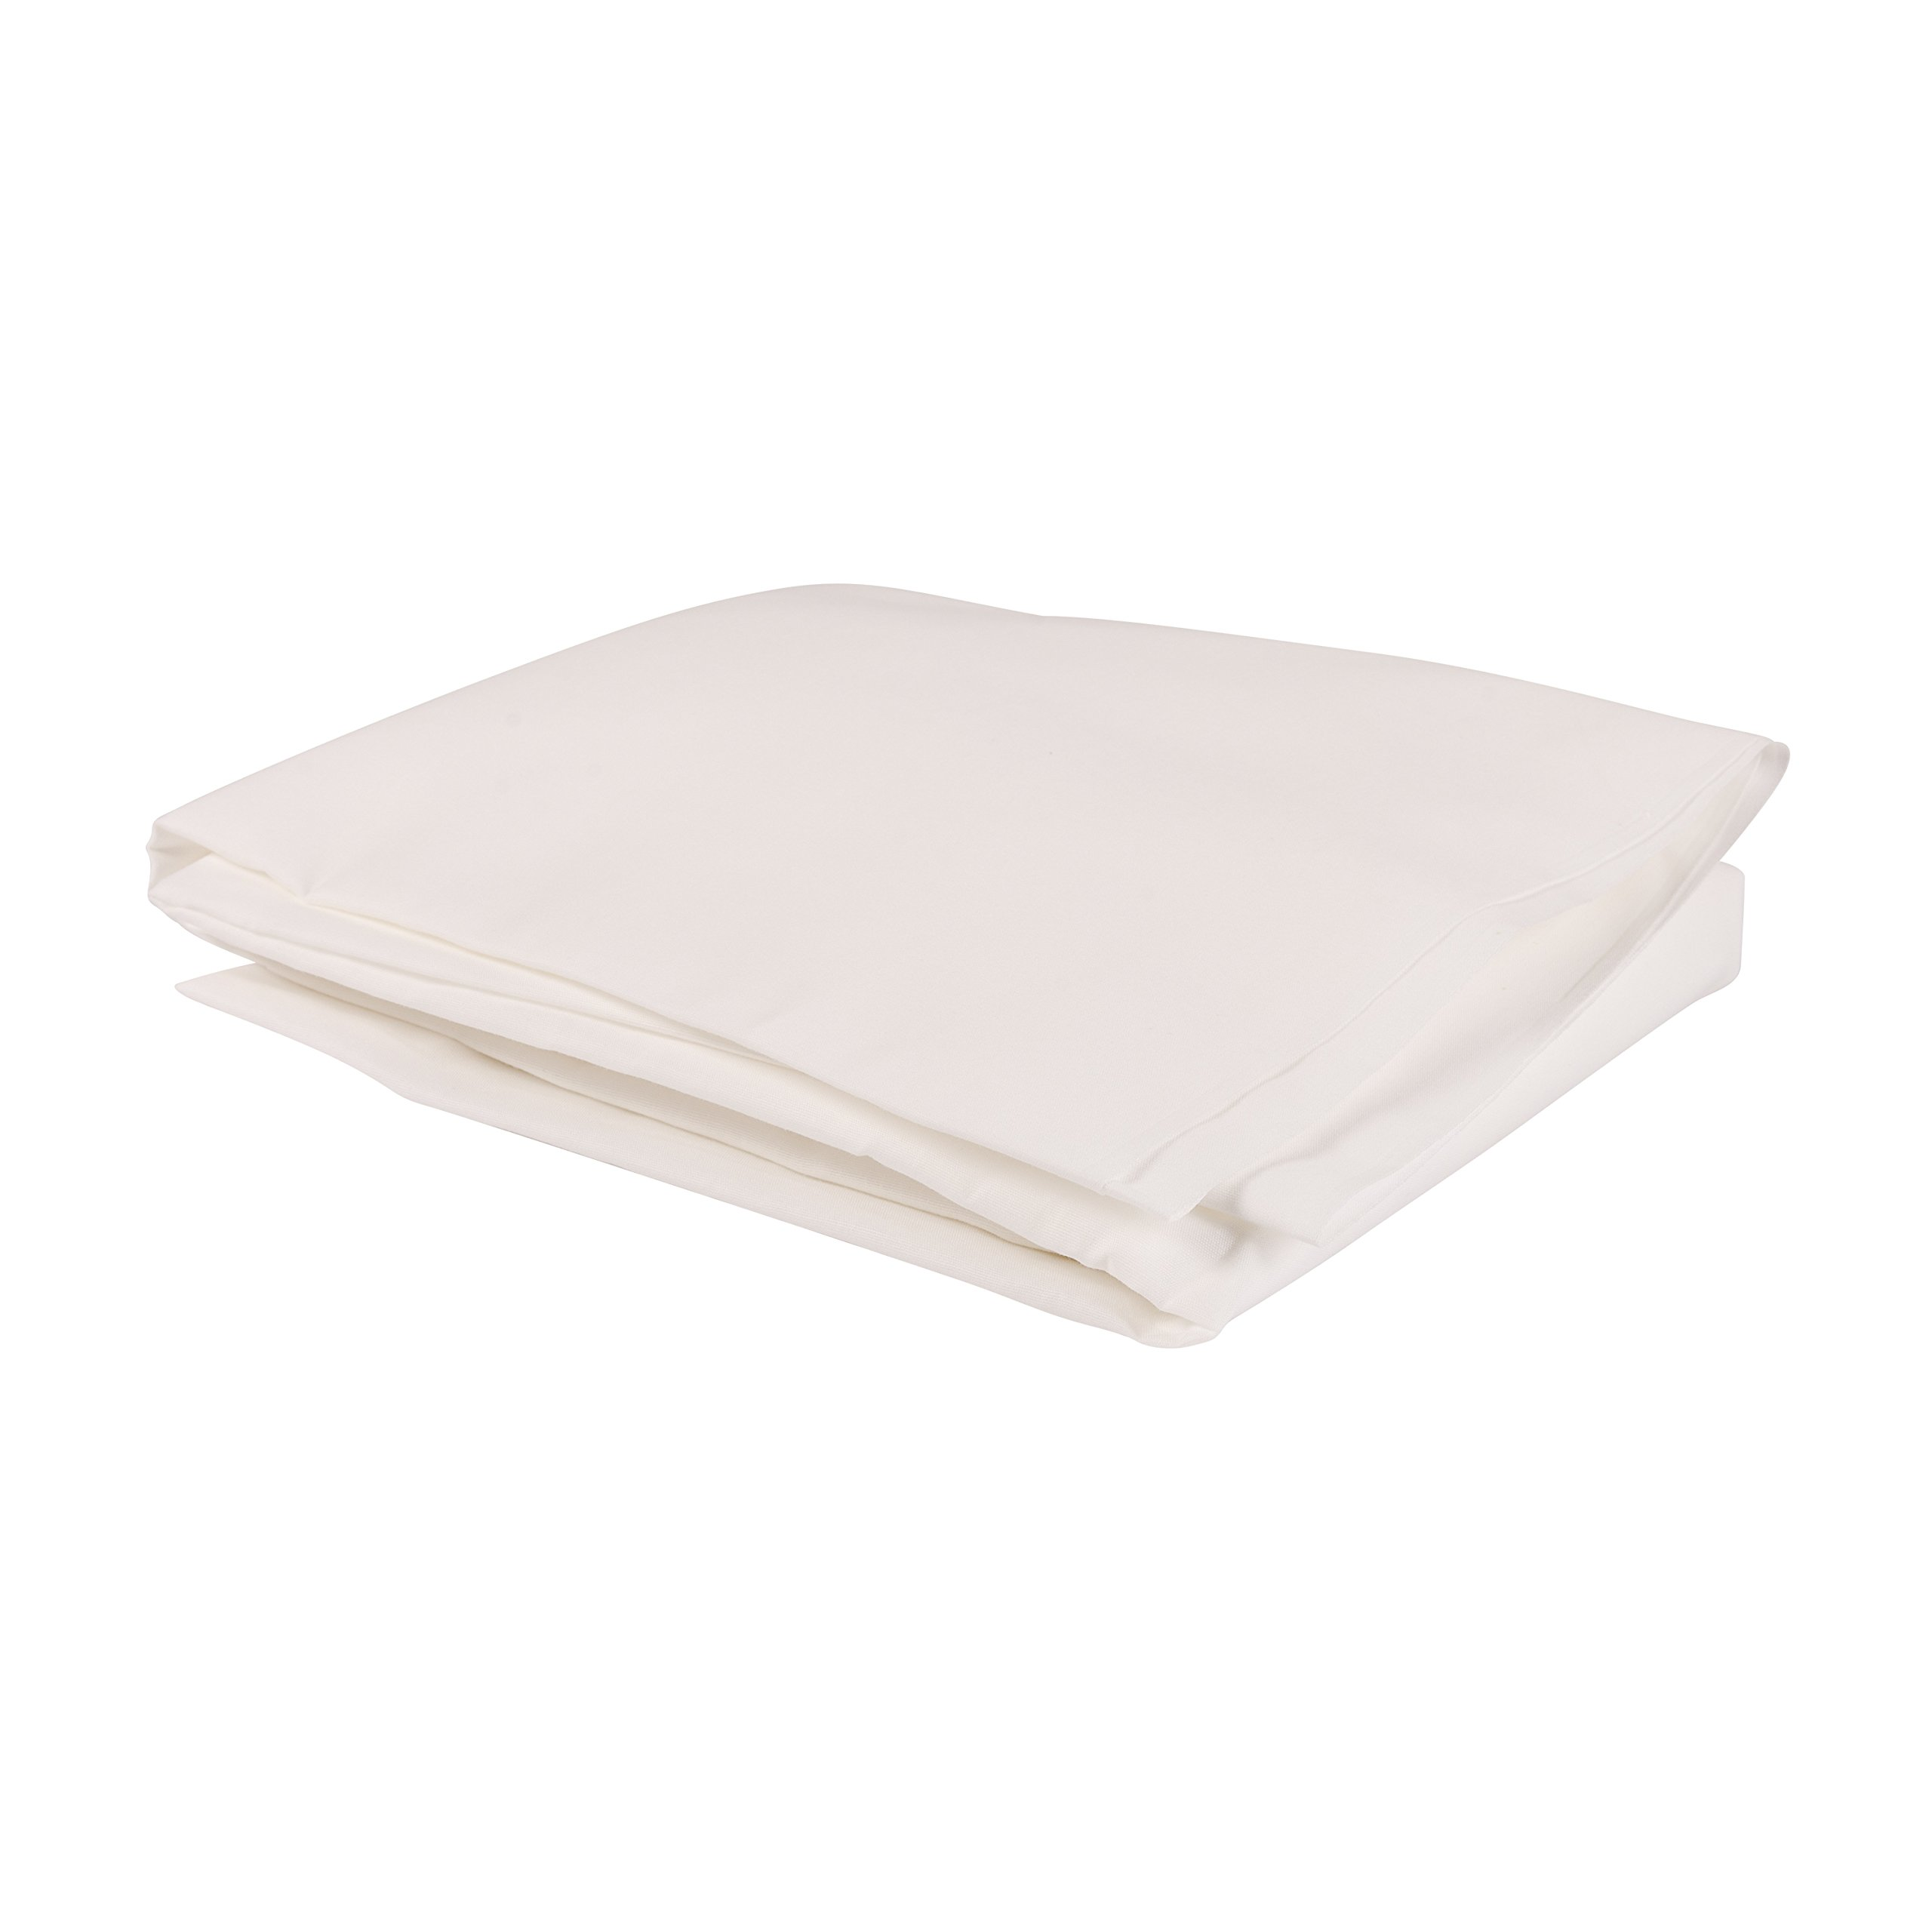 DMI Fitted Hospital Bed Bottom Sheets, Standard Size, White, 12-Count